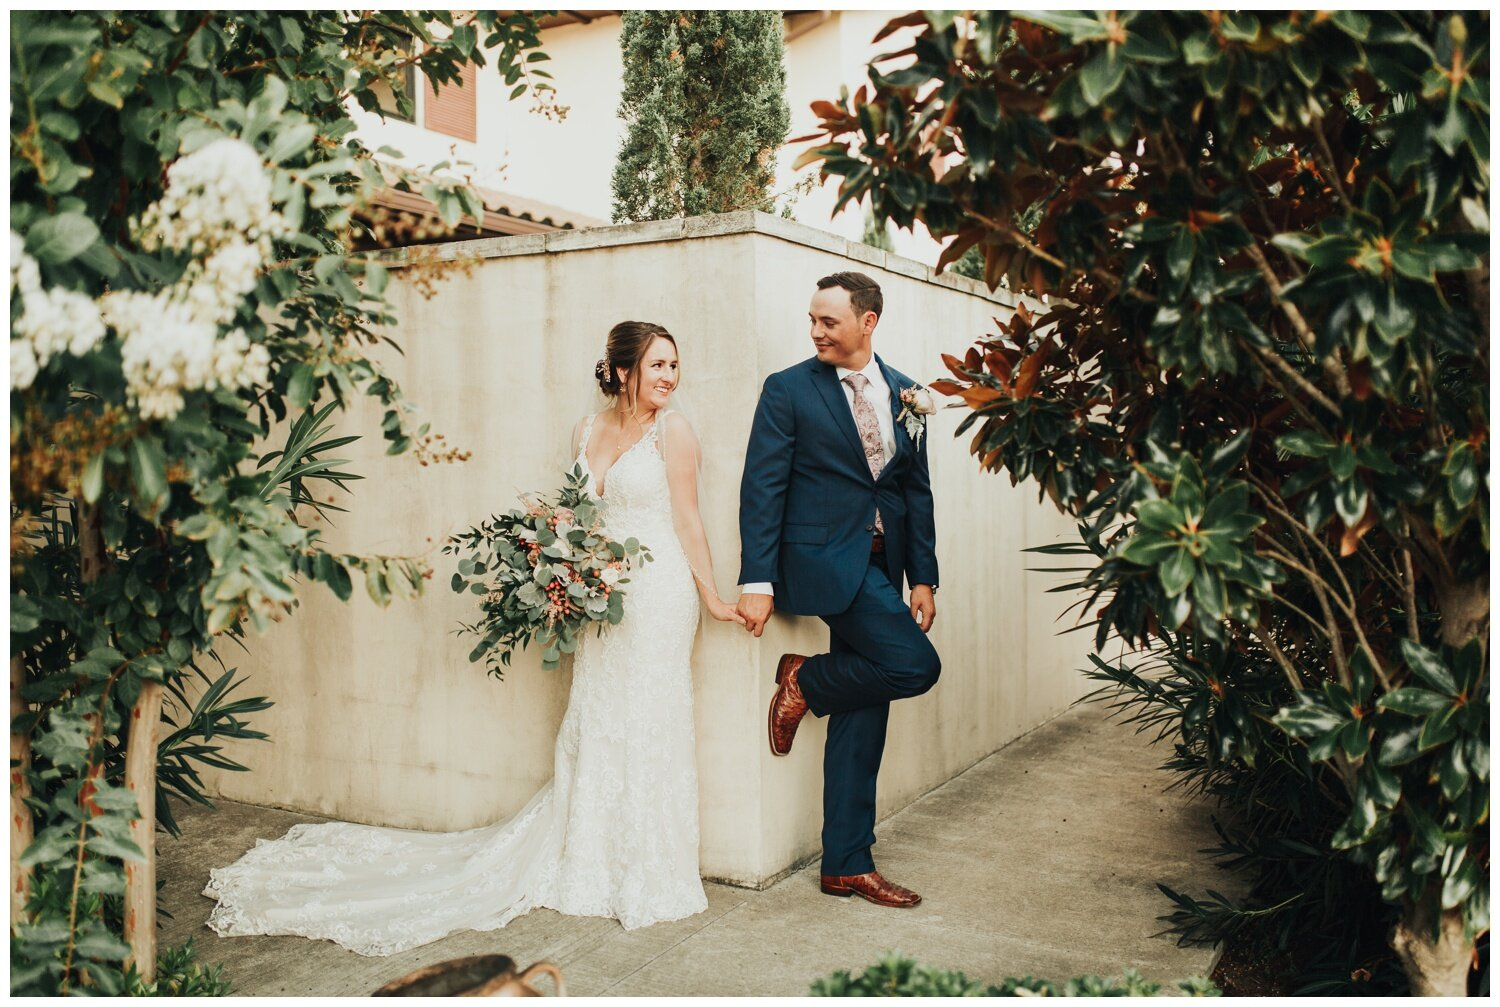 Modern Wedding at Ma Maison in Dripping Springs, Austin, Texas (Joshua and Parisa – Austin Wedding Photographer)_0050.jpg